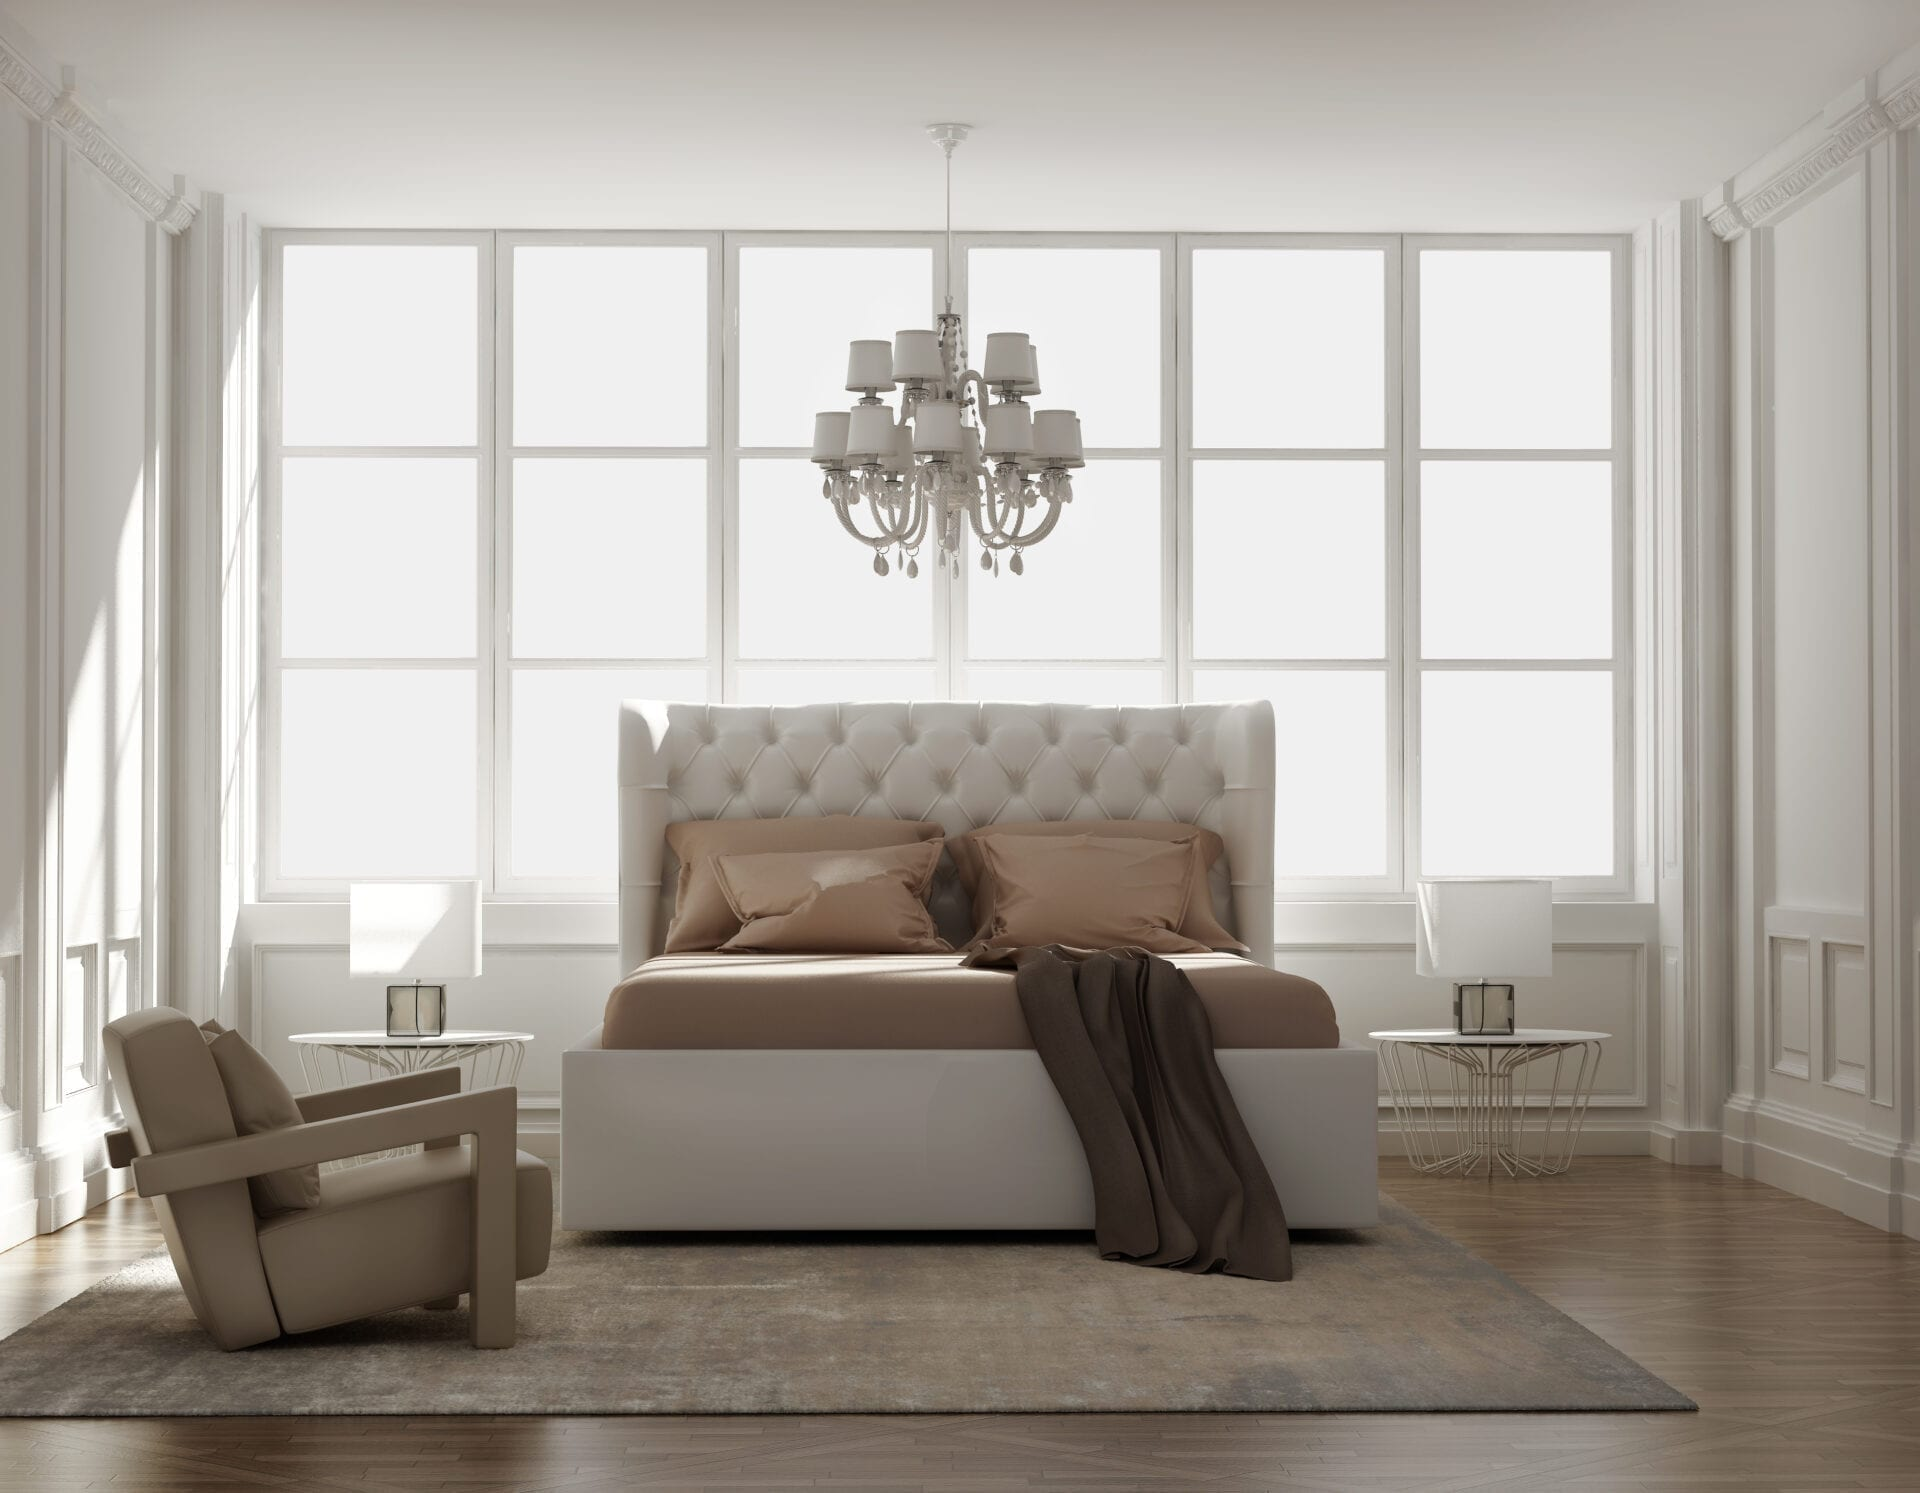 Chic Wall mounted upholstered, luxury headboard with custom upholstered wall panels - Custom luxury, upholstered beds with high end, bedroom textiles   Blend Home Furnishings